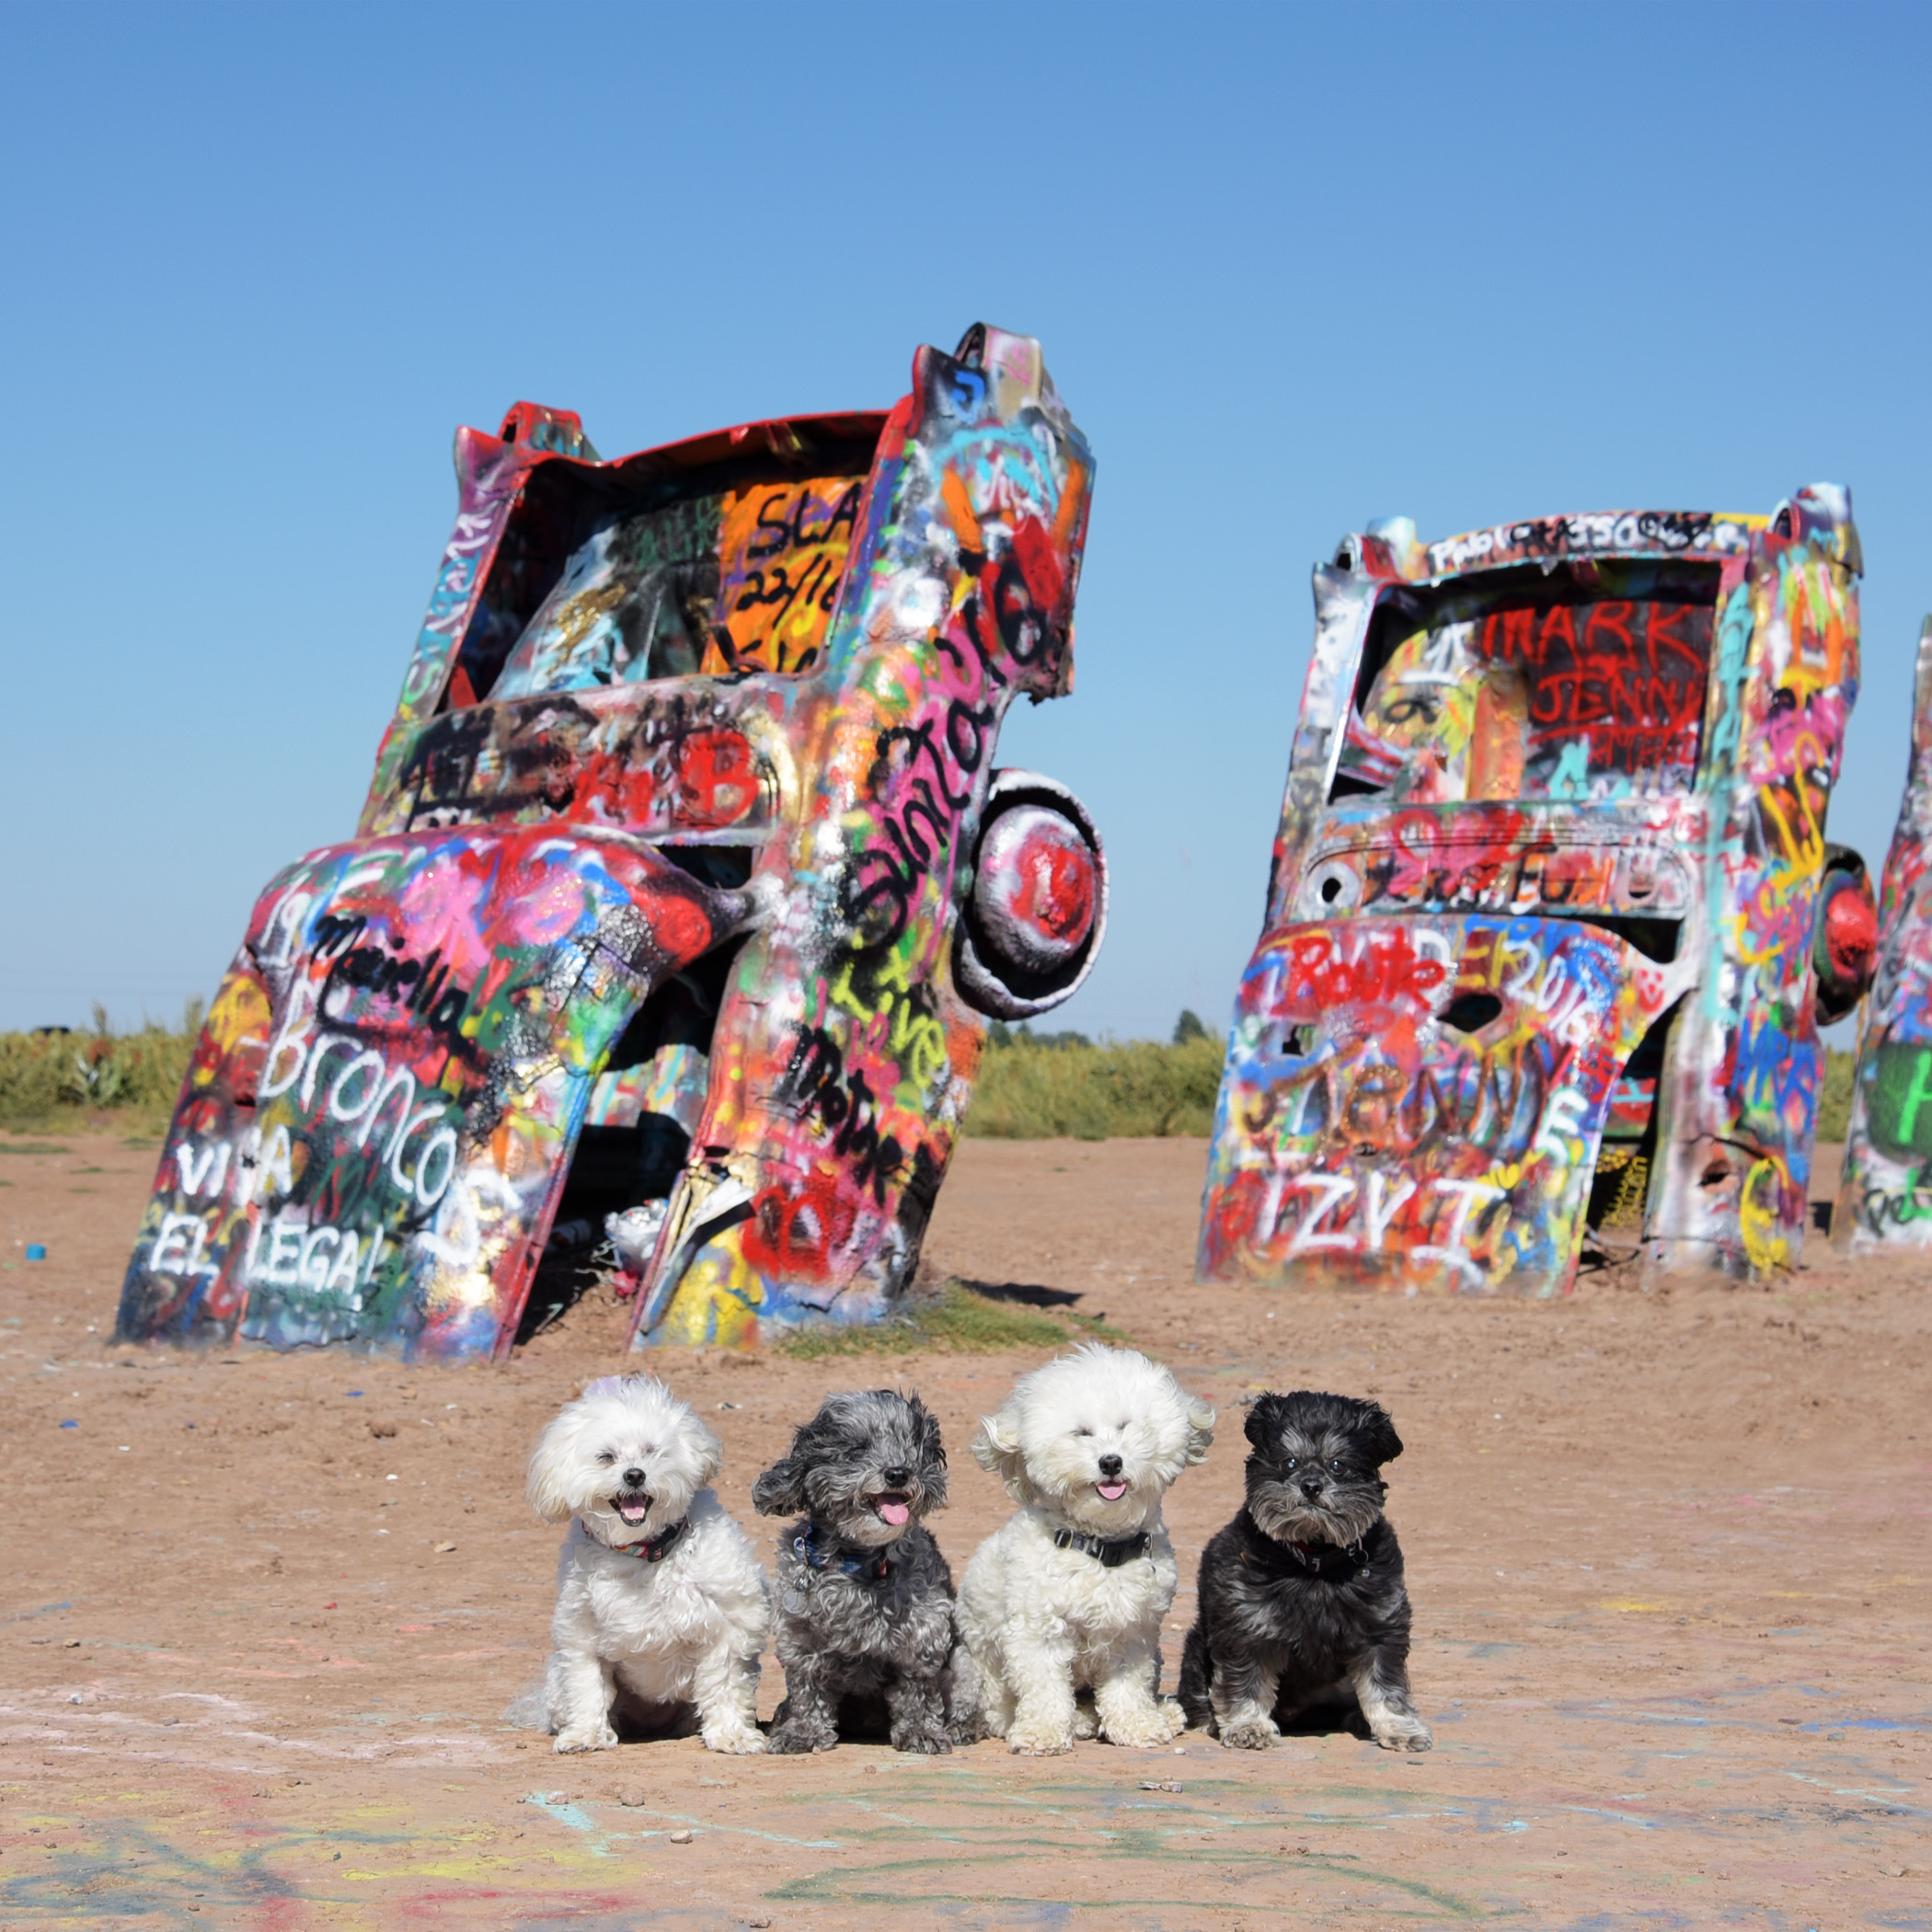 Just outside of Amarillo, Texas is Cadillac Ranch, a public art installation and sculpture. Various Cadillacs have been half buried, nose first in the ground. Writing graffiti or spray painting is actually encouraged, so every time you see the installation it will have a unique look. Mommy wouldn't let us spray paint, because she said we would probably just turn the spray paint on each other!